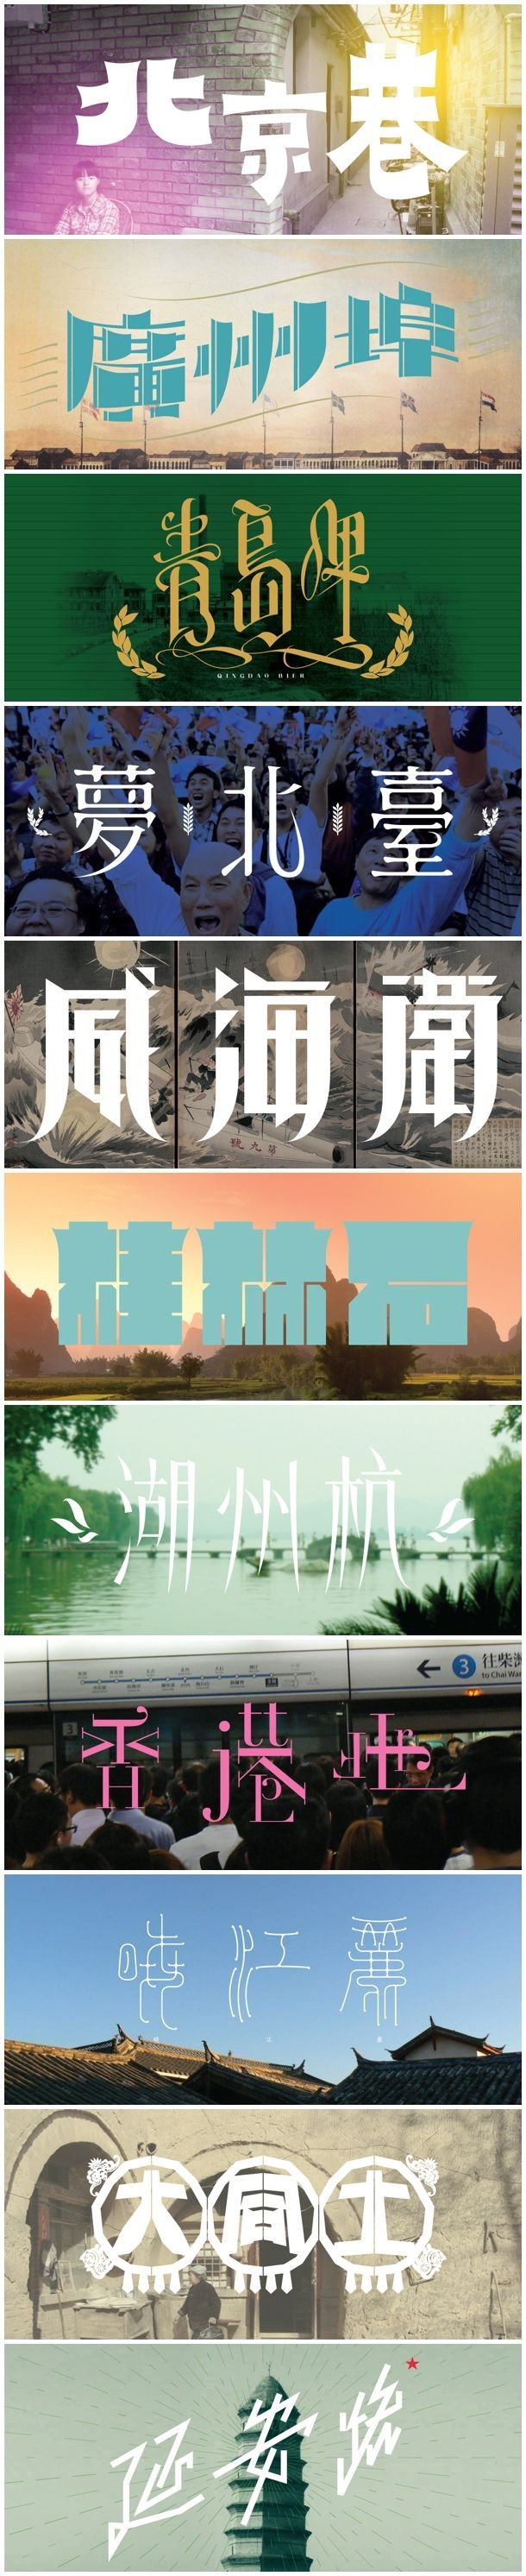 Cities of China  via http://www.behance.net/gallery/Cities-of-China/10820017